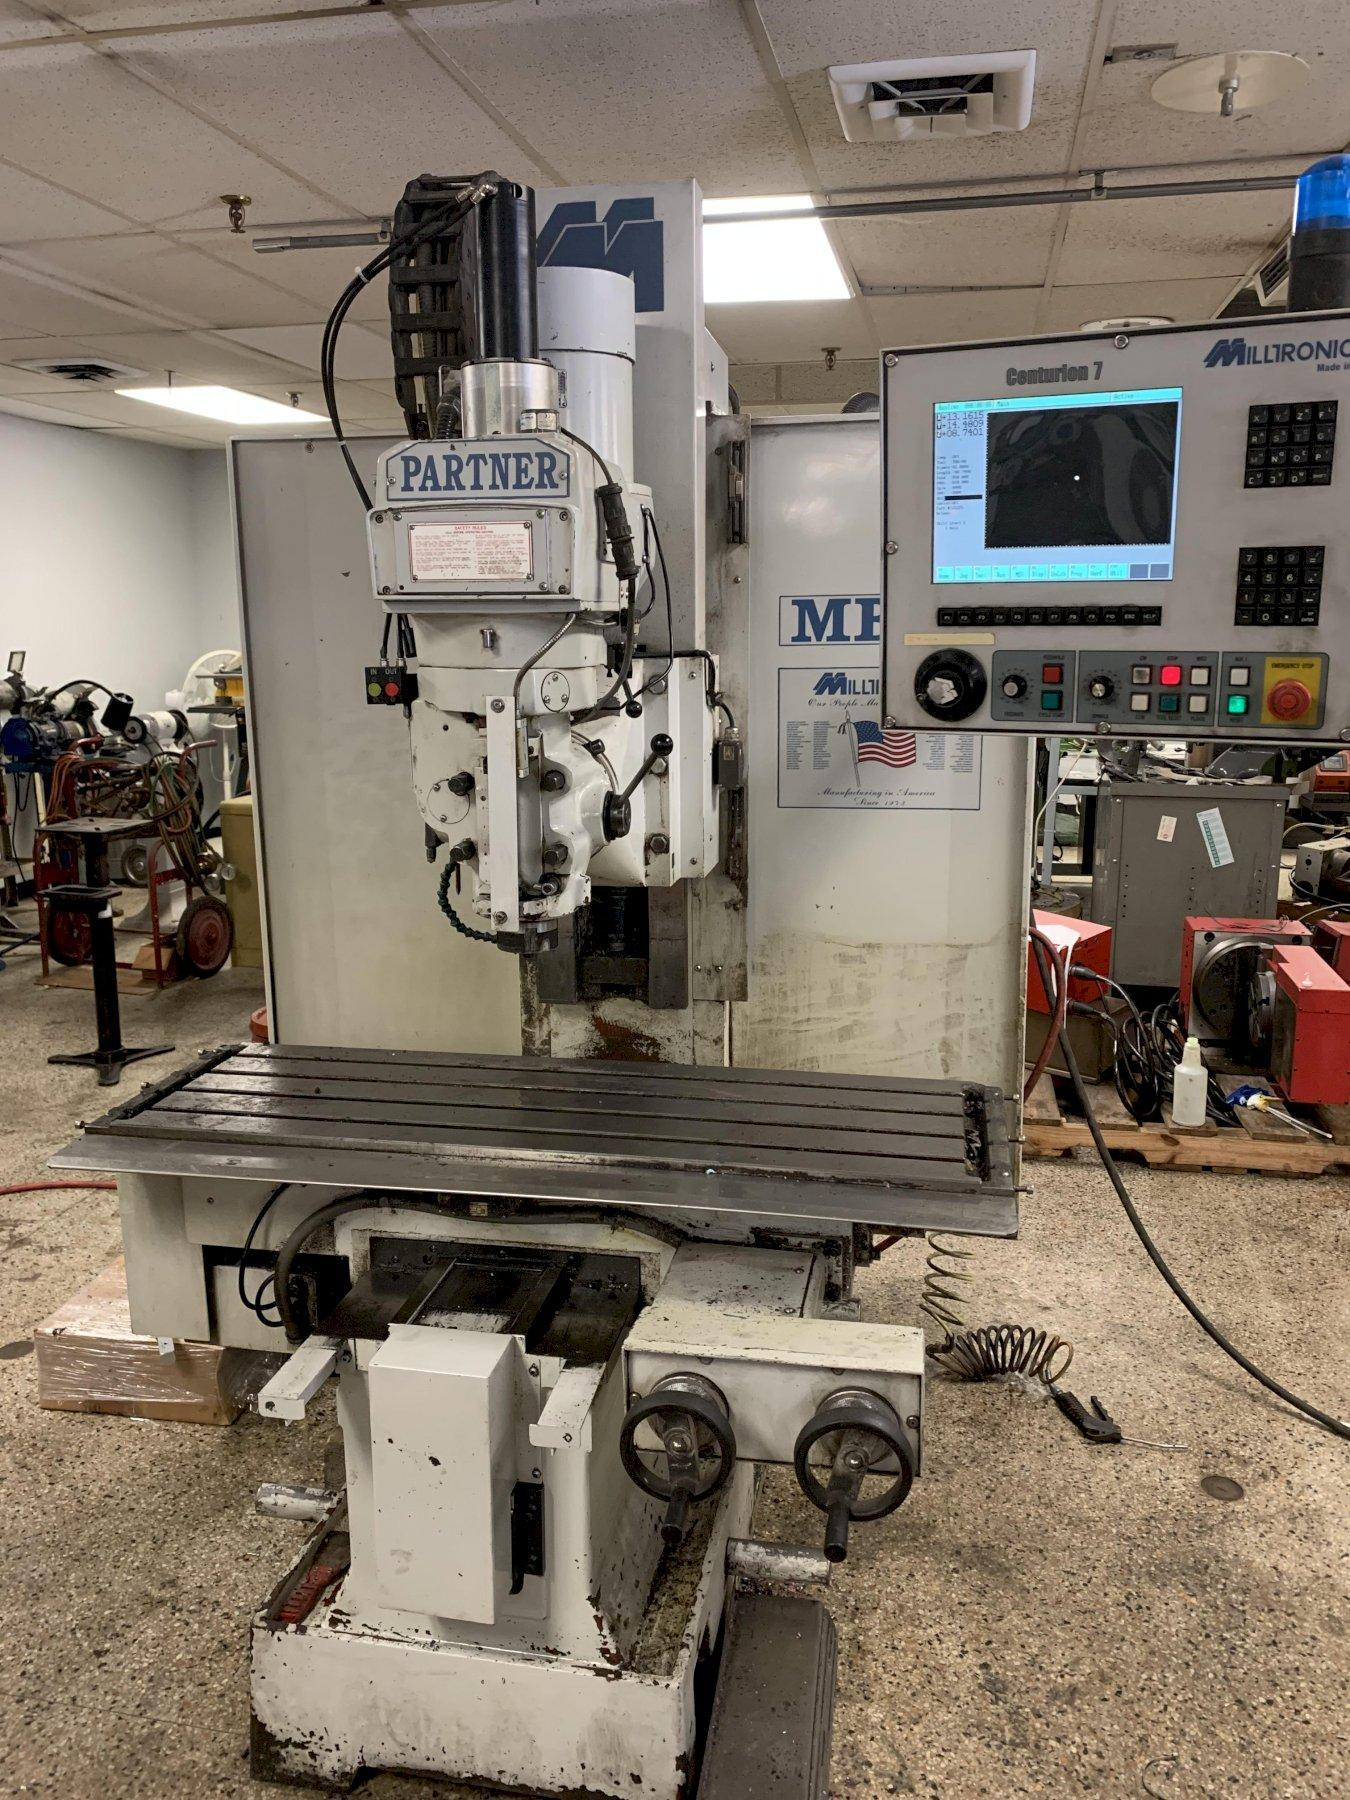 Milltronics MB19 3-Axis CNC Vertical Bed Mill, S/N 8942, New 2005.